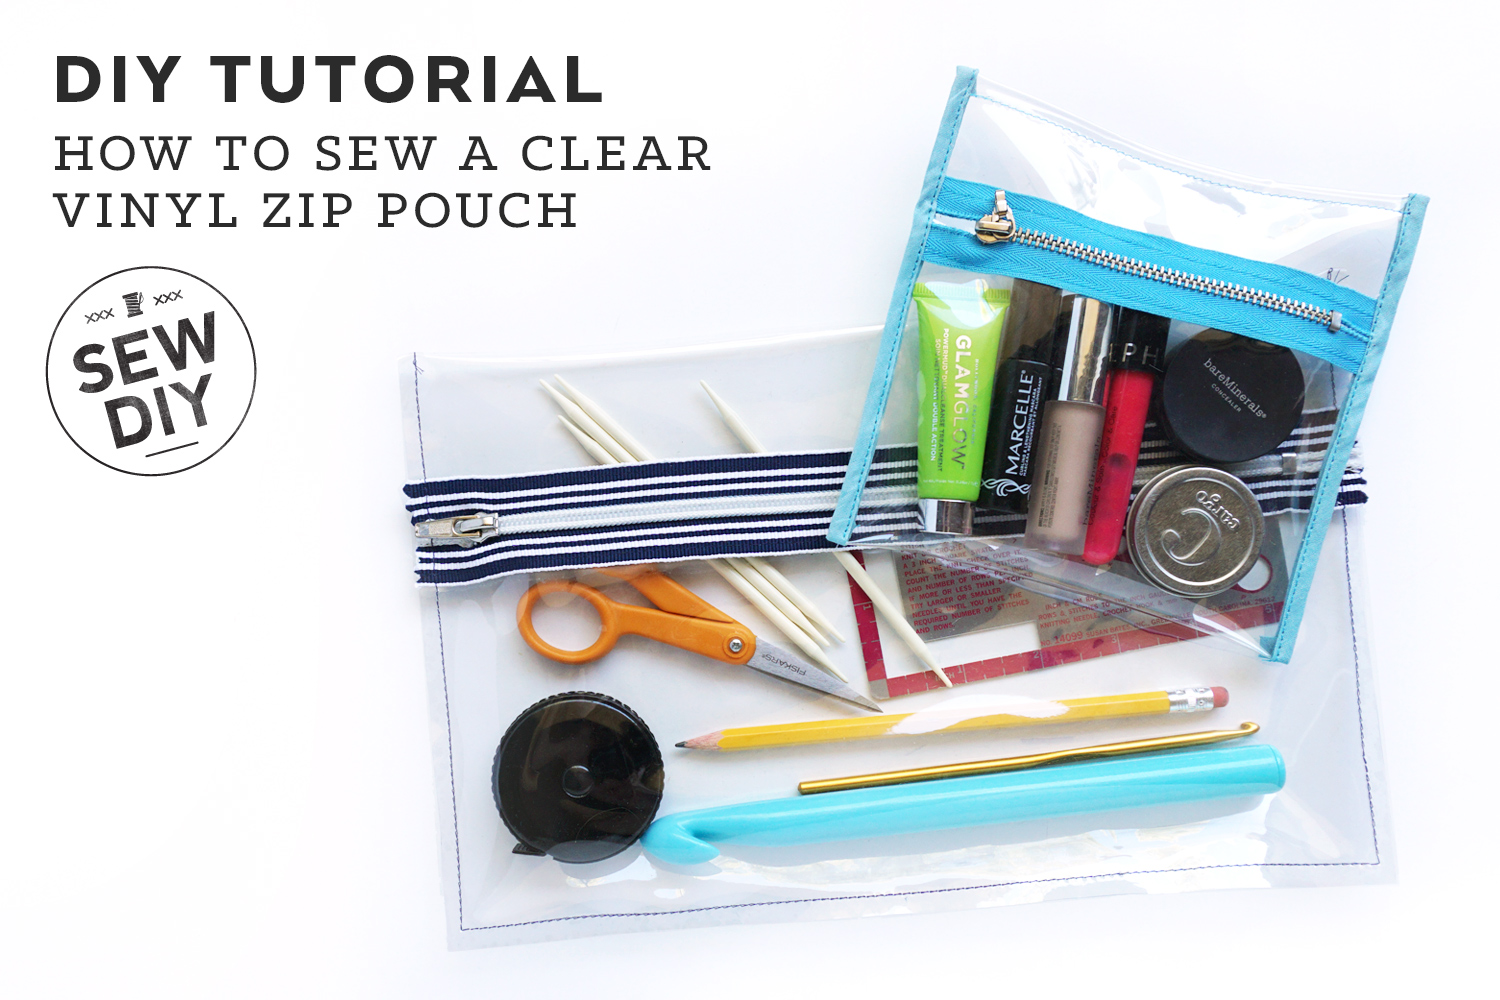 Diy Tutorial Clear Vinyl Zippered Pouch Sew Diy